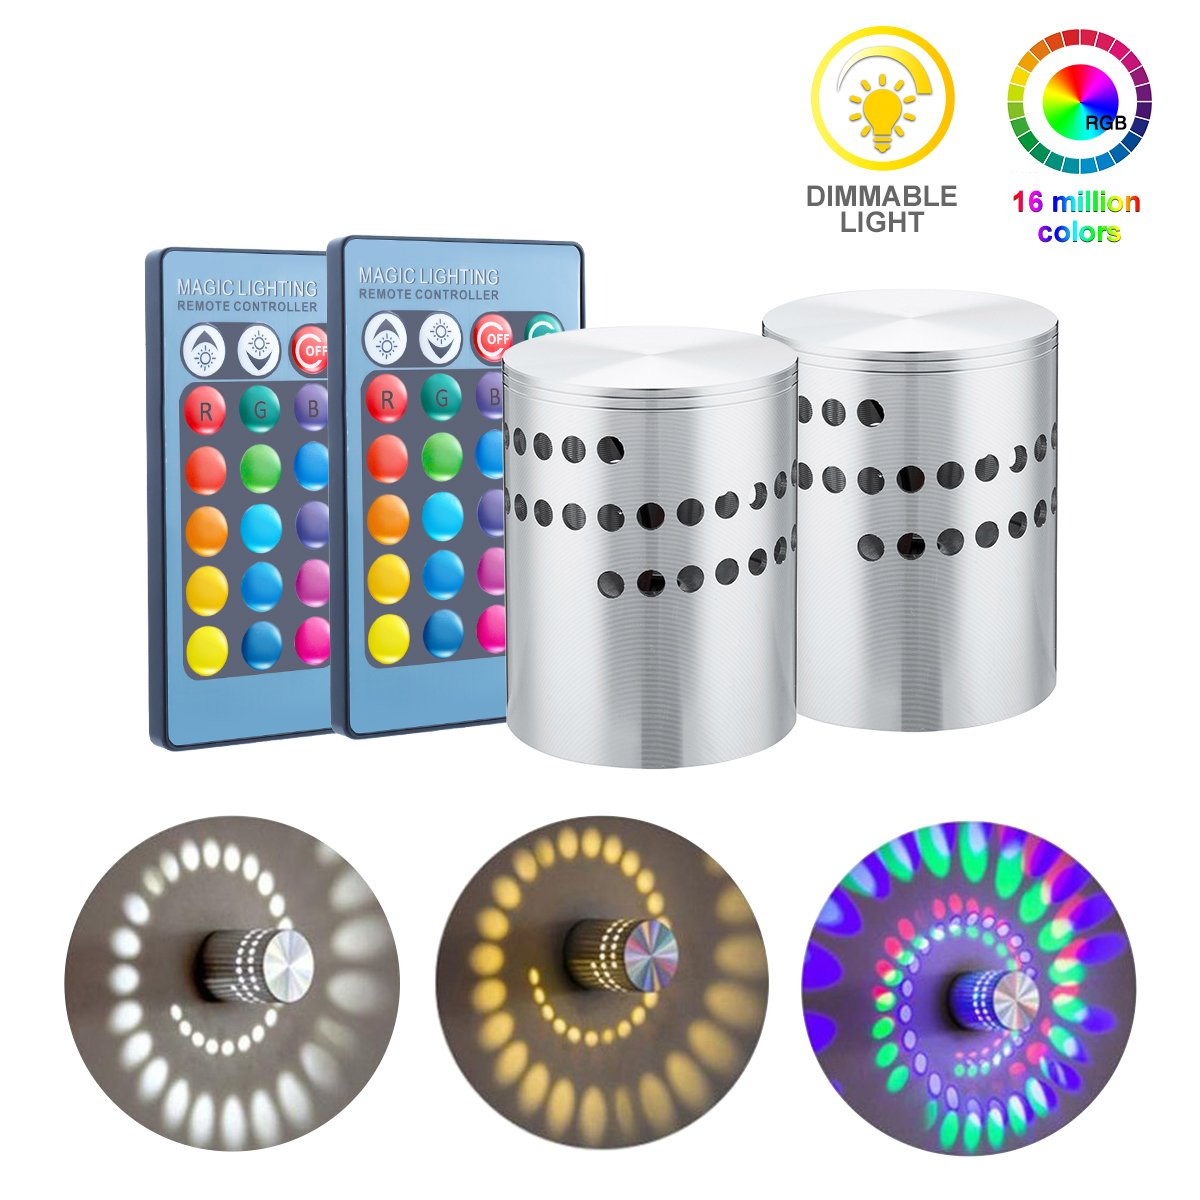 KingSo 2 Pack RGB Spiral LED Wall Light, 3W Remote Control Dimmable Mini Ceiling Light,Surface Install Colorful Lamp, 360 Degrees Beam Angle, For Party,Bars,Hotel,Bedroom,Hallway,Corridor,Cafe